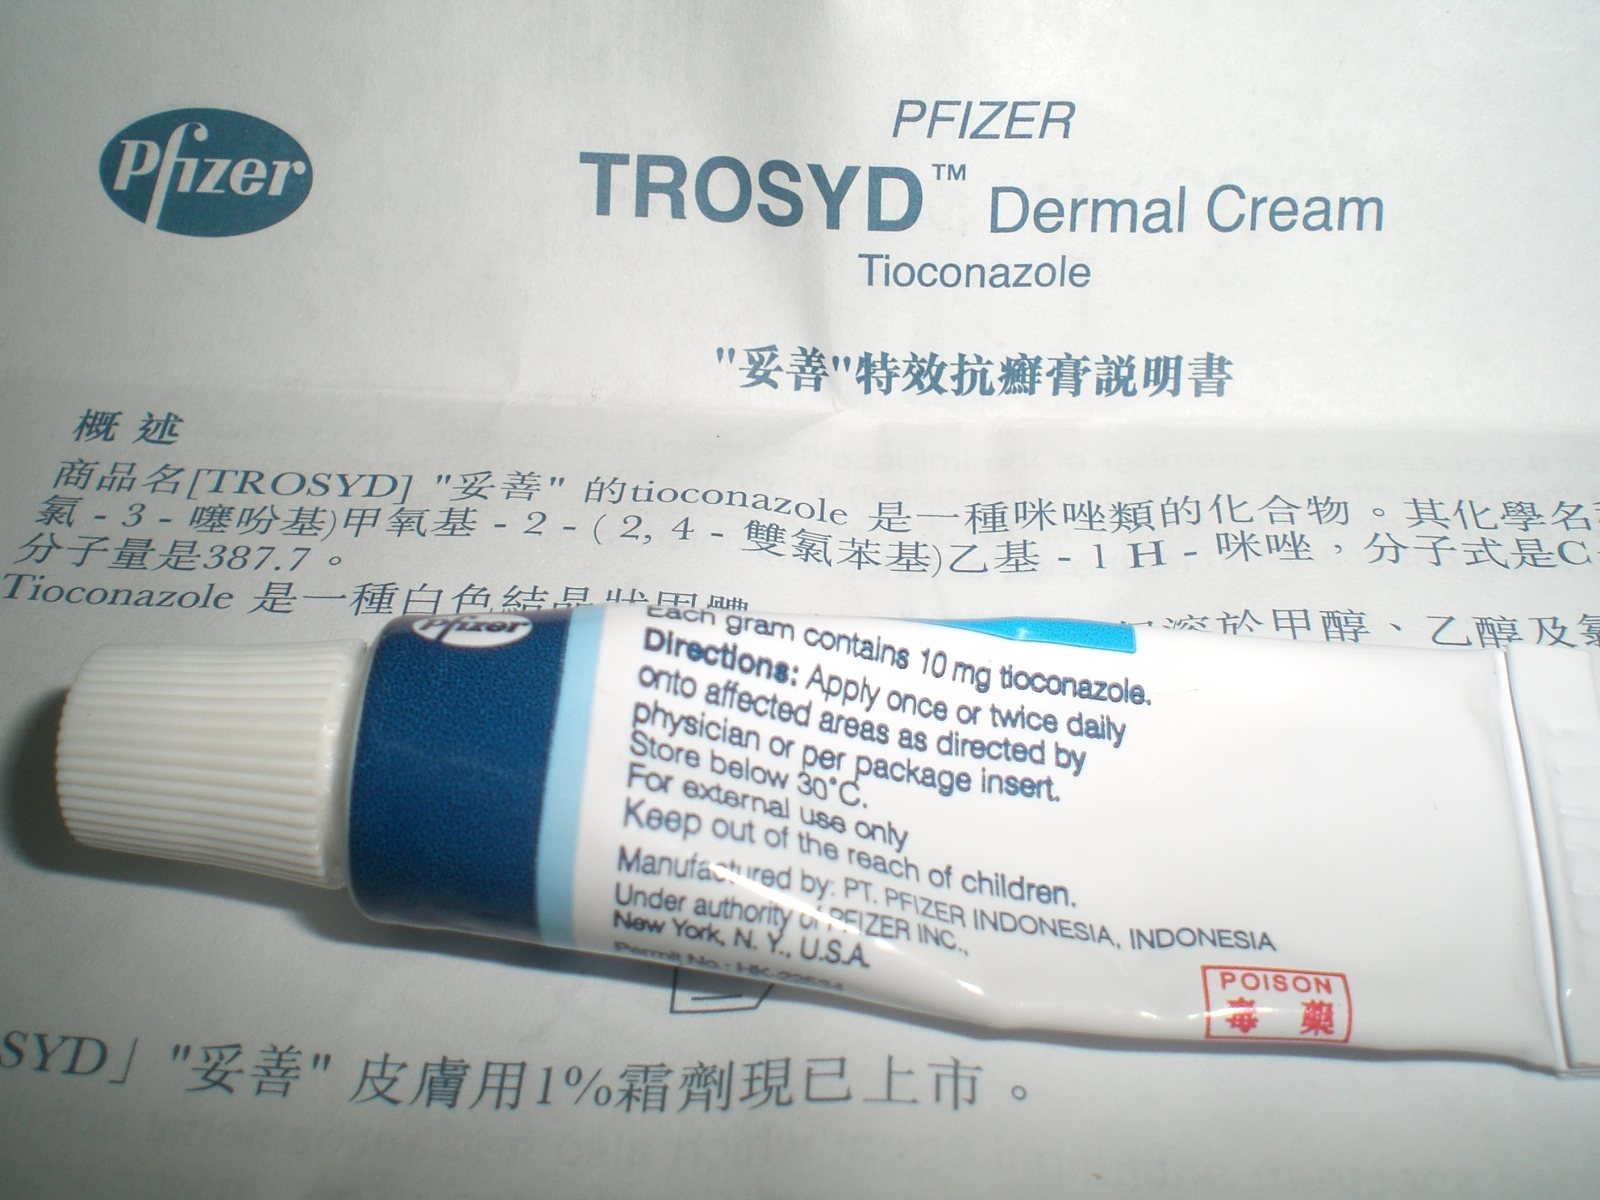 File:Pfizer Trosyd Dermal Cream tube package and product